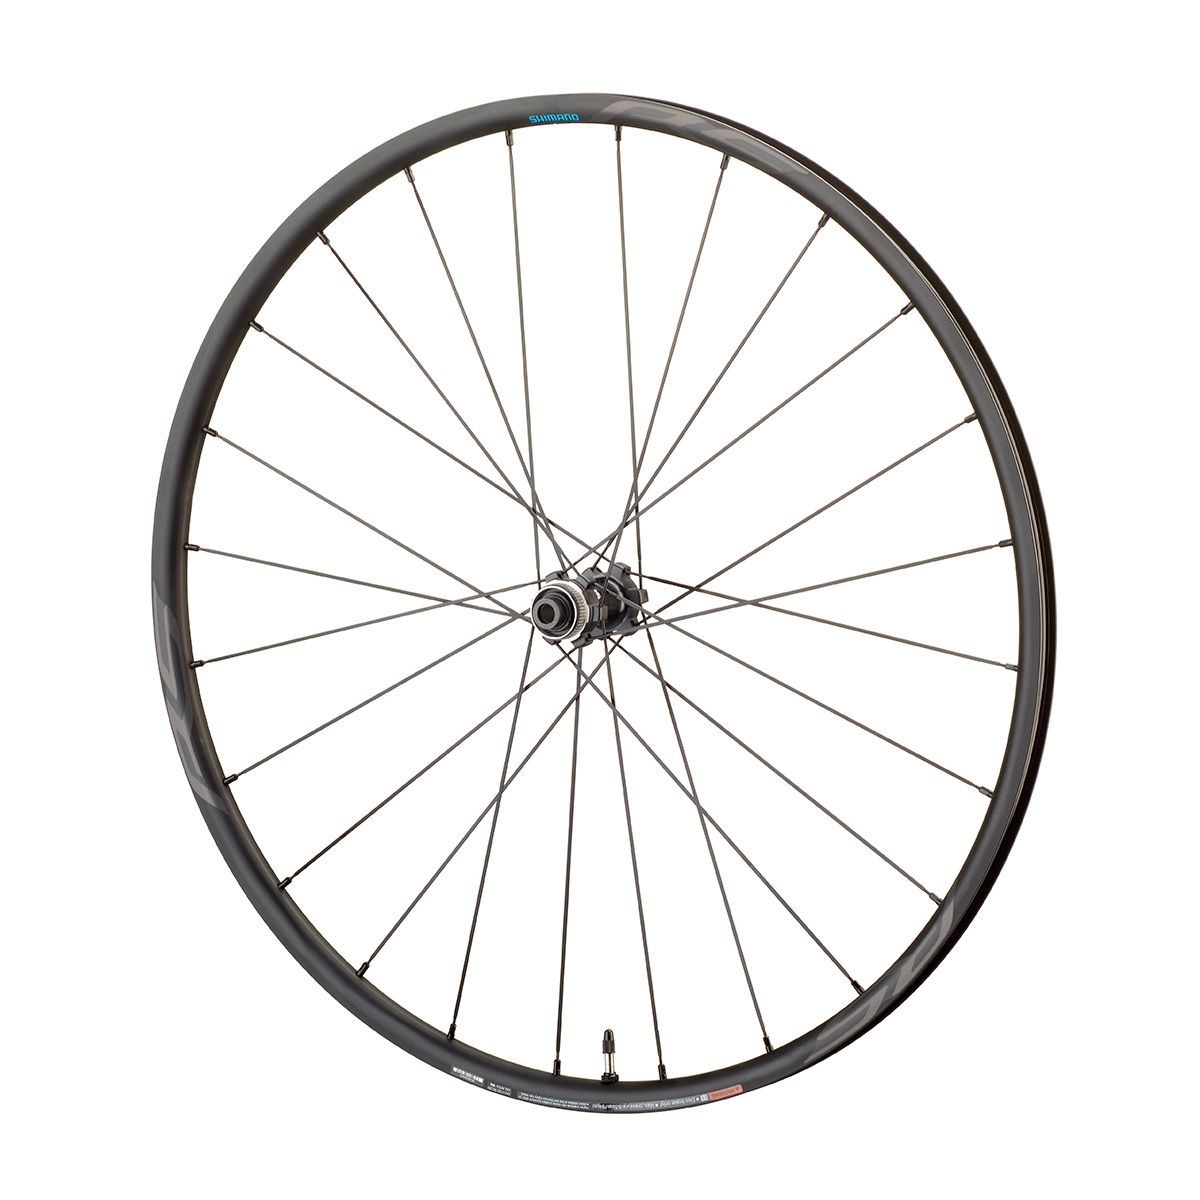 Buy SHIMANO WH-RS370-TL Disc road wheels|WH-RS370-TL Disc